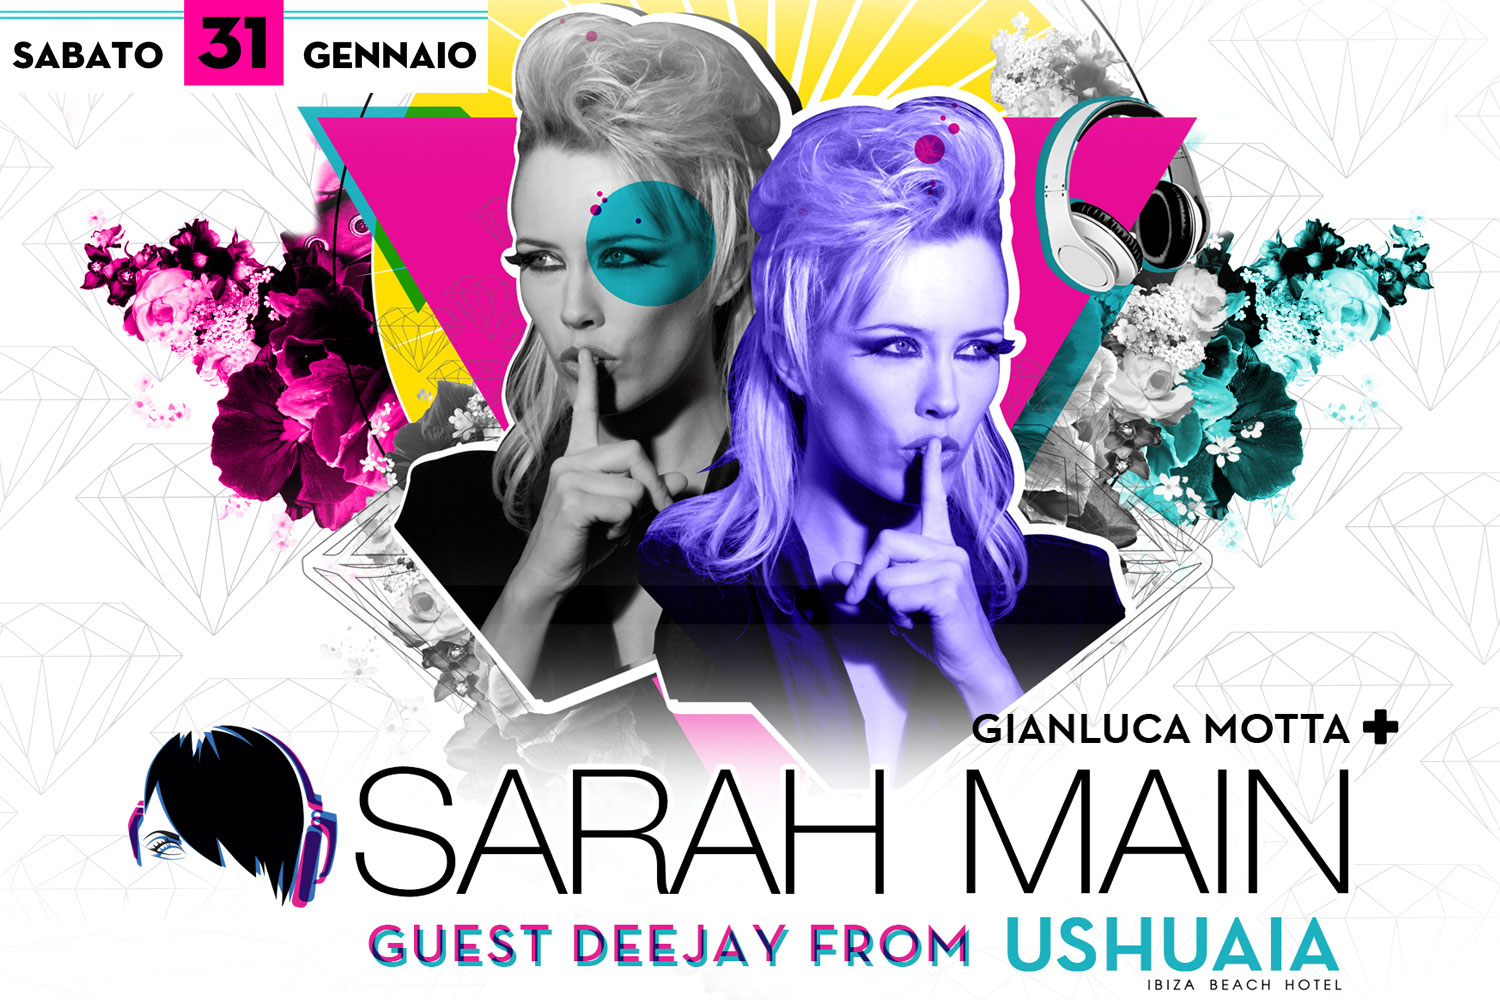 Sarah Main from Ushuaia & Gianluca Motta